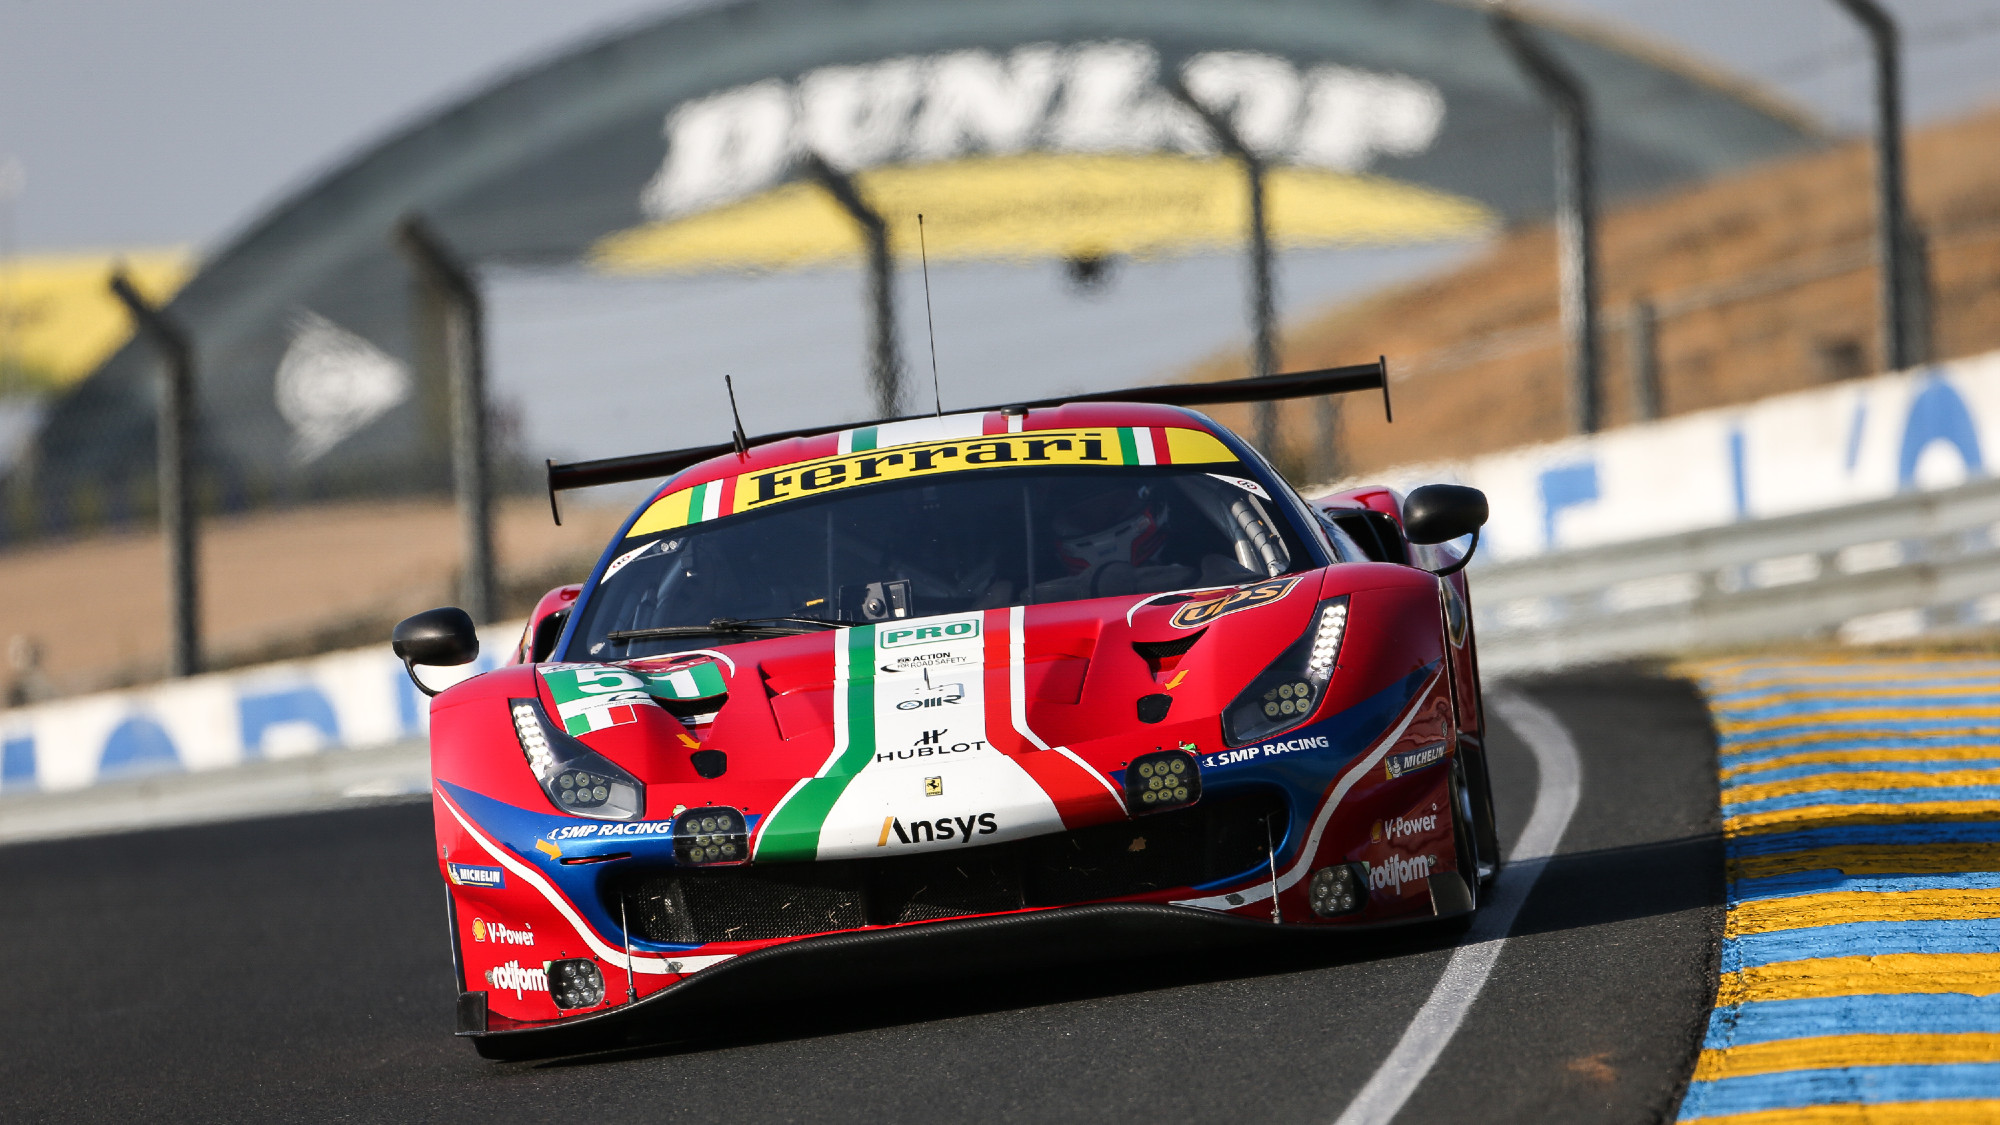 Ferrari confirms Le Mans return with hypercar programme for 2023 season